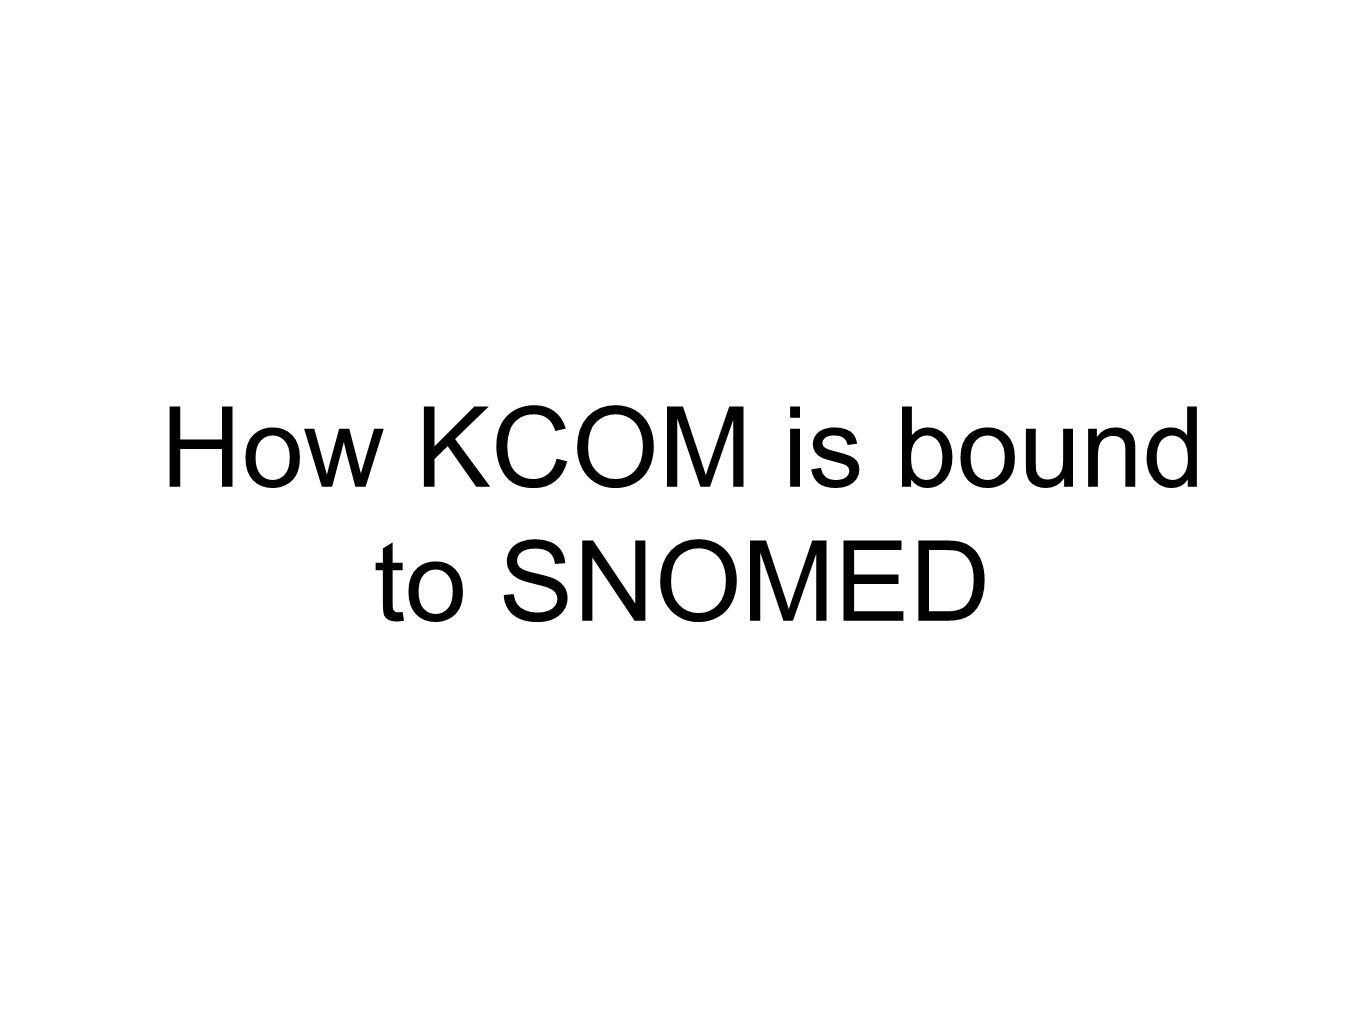 How KCOM is bound to SNOMED